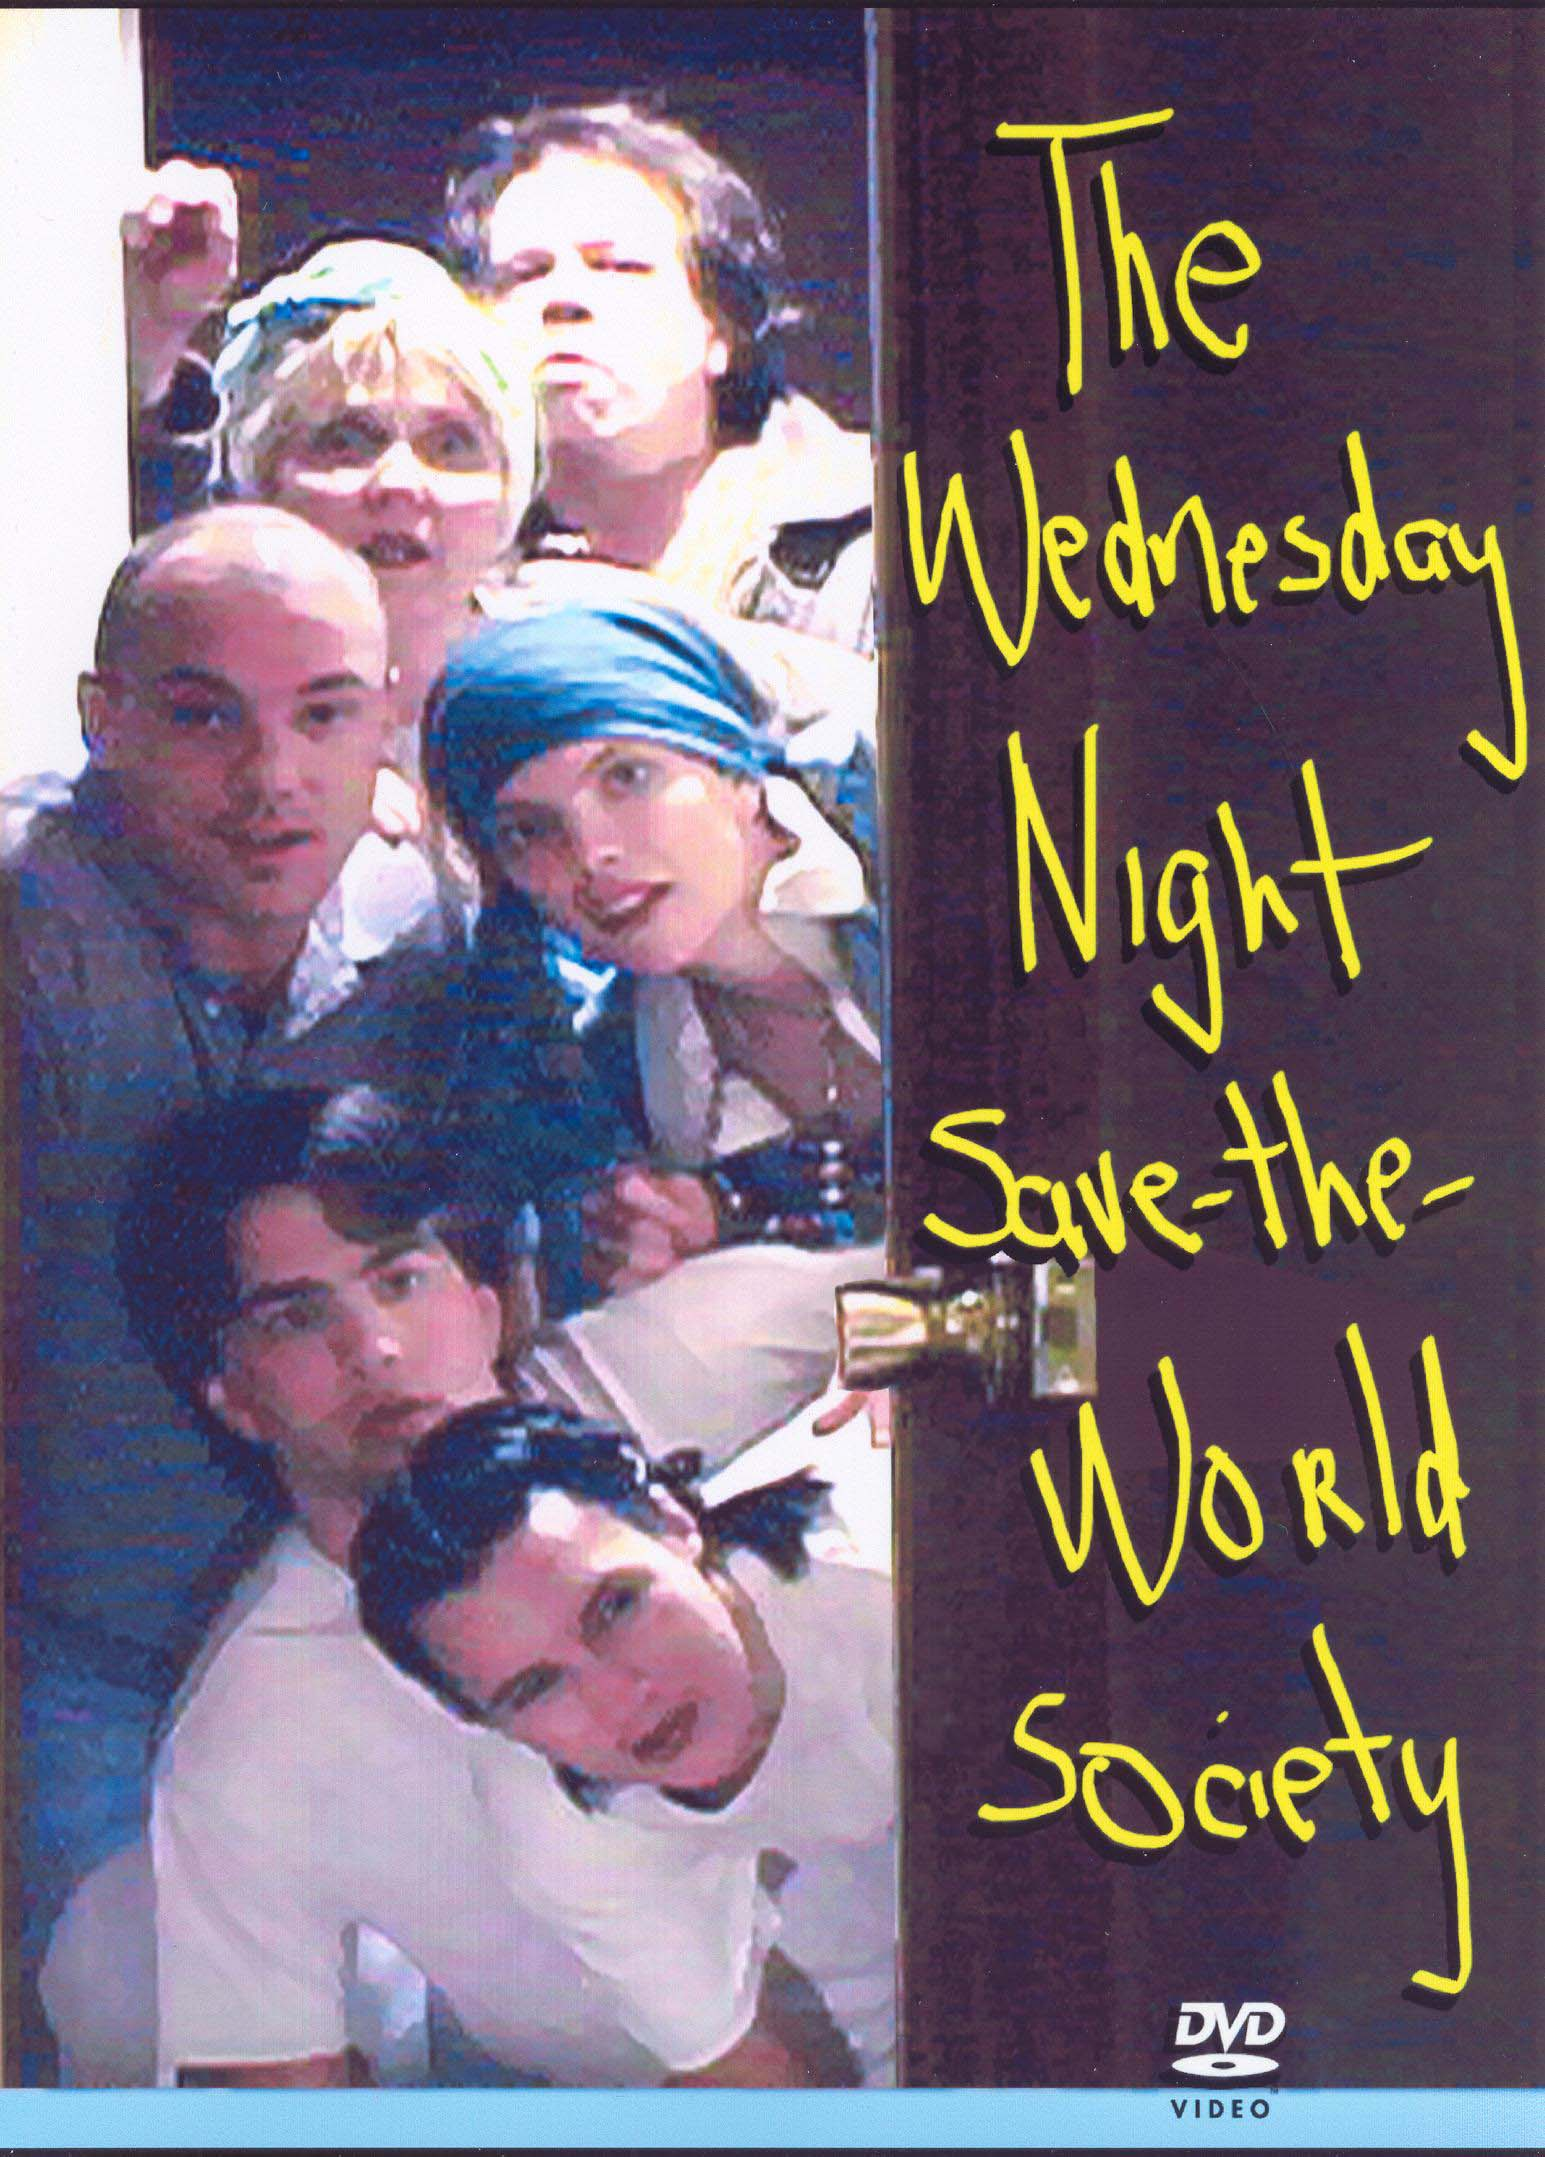 The Wednesday Night Save the World Society